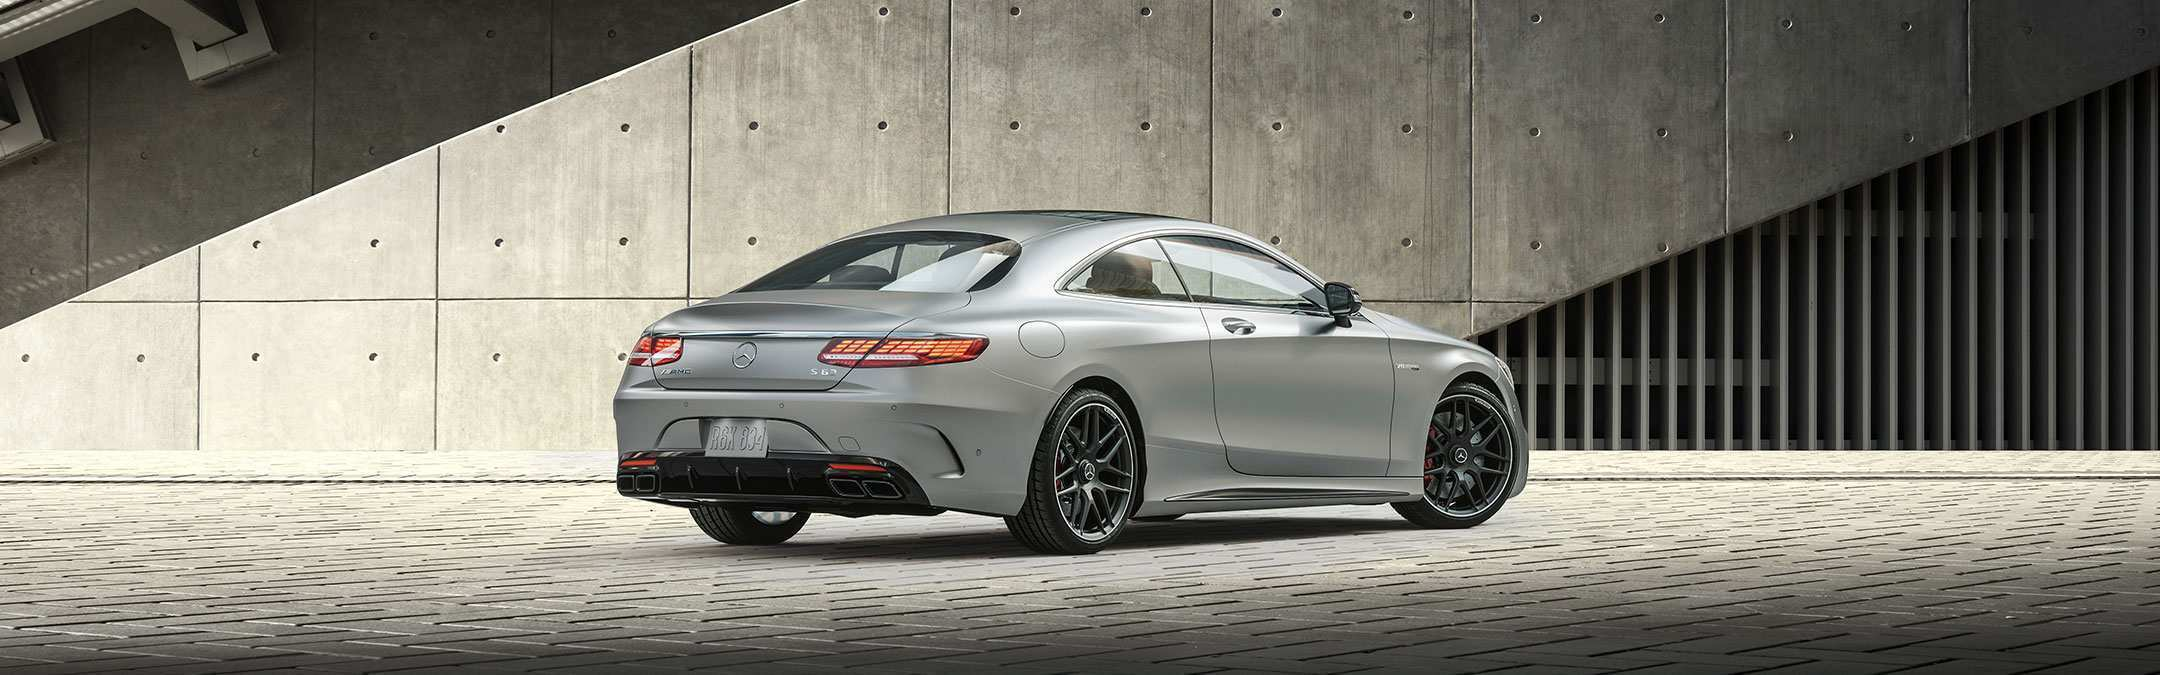 46 Best Mercedes 2019 Coupe Performance